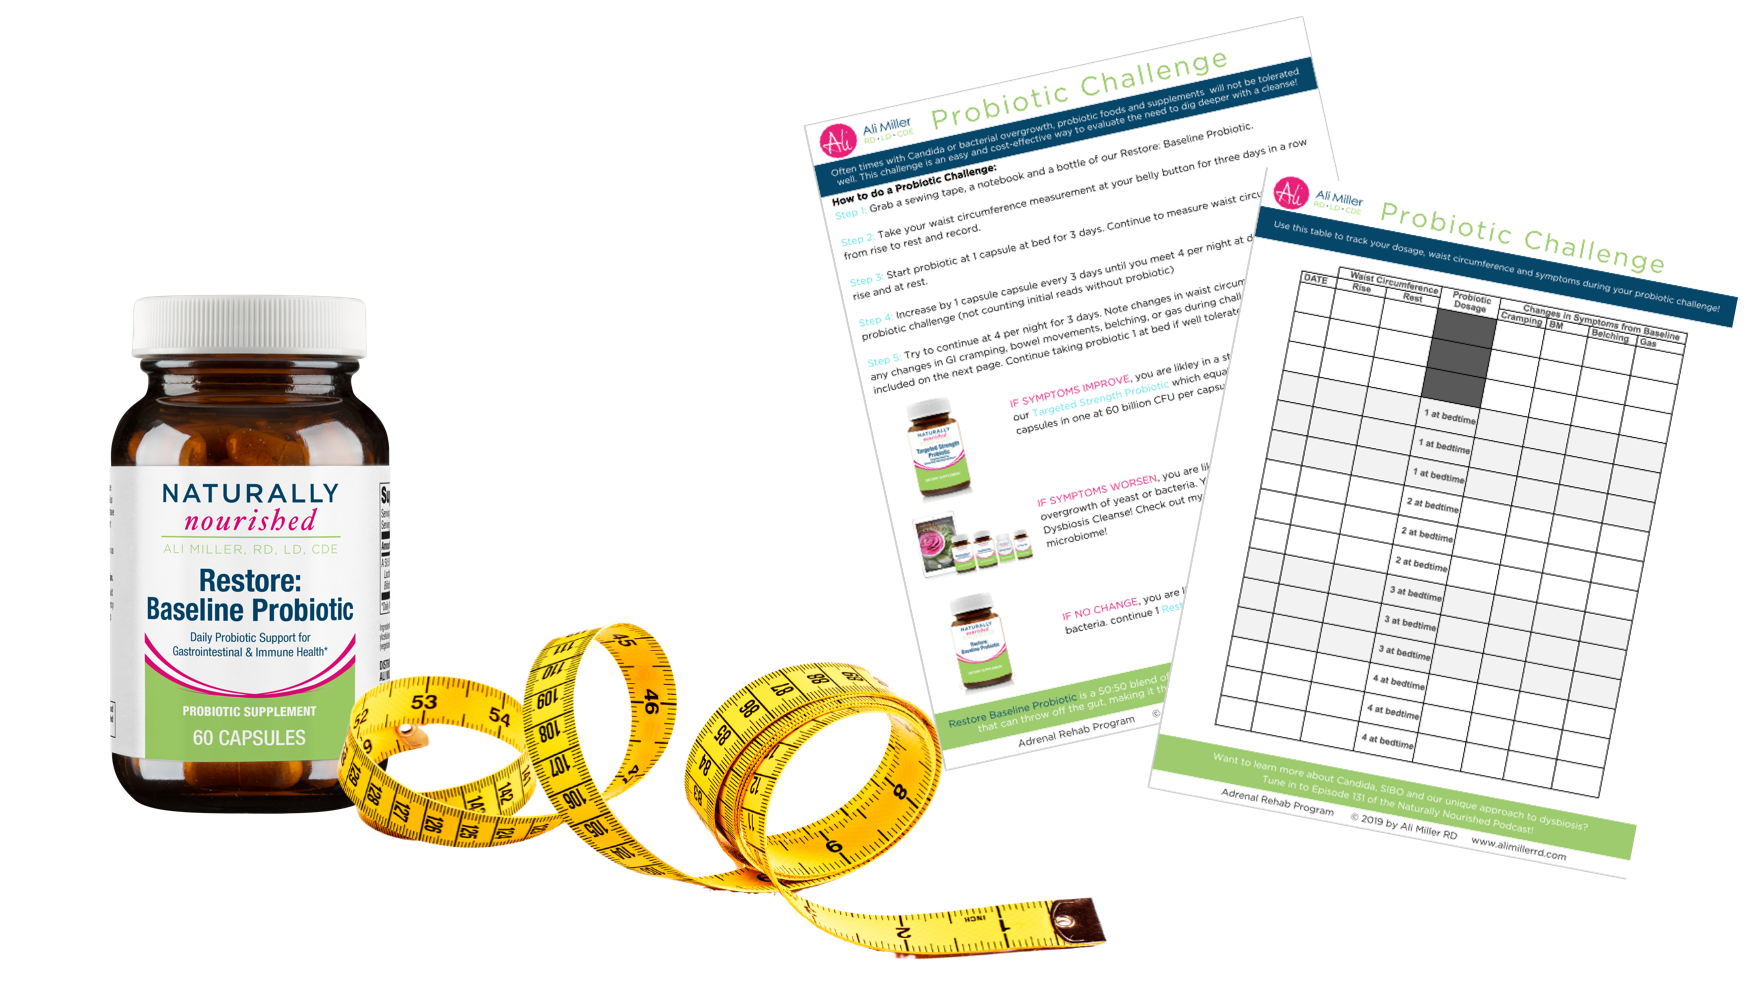 probiotic challenge with restore baseline probiotic and measuring tape